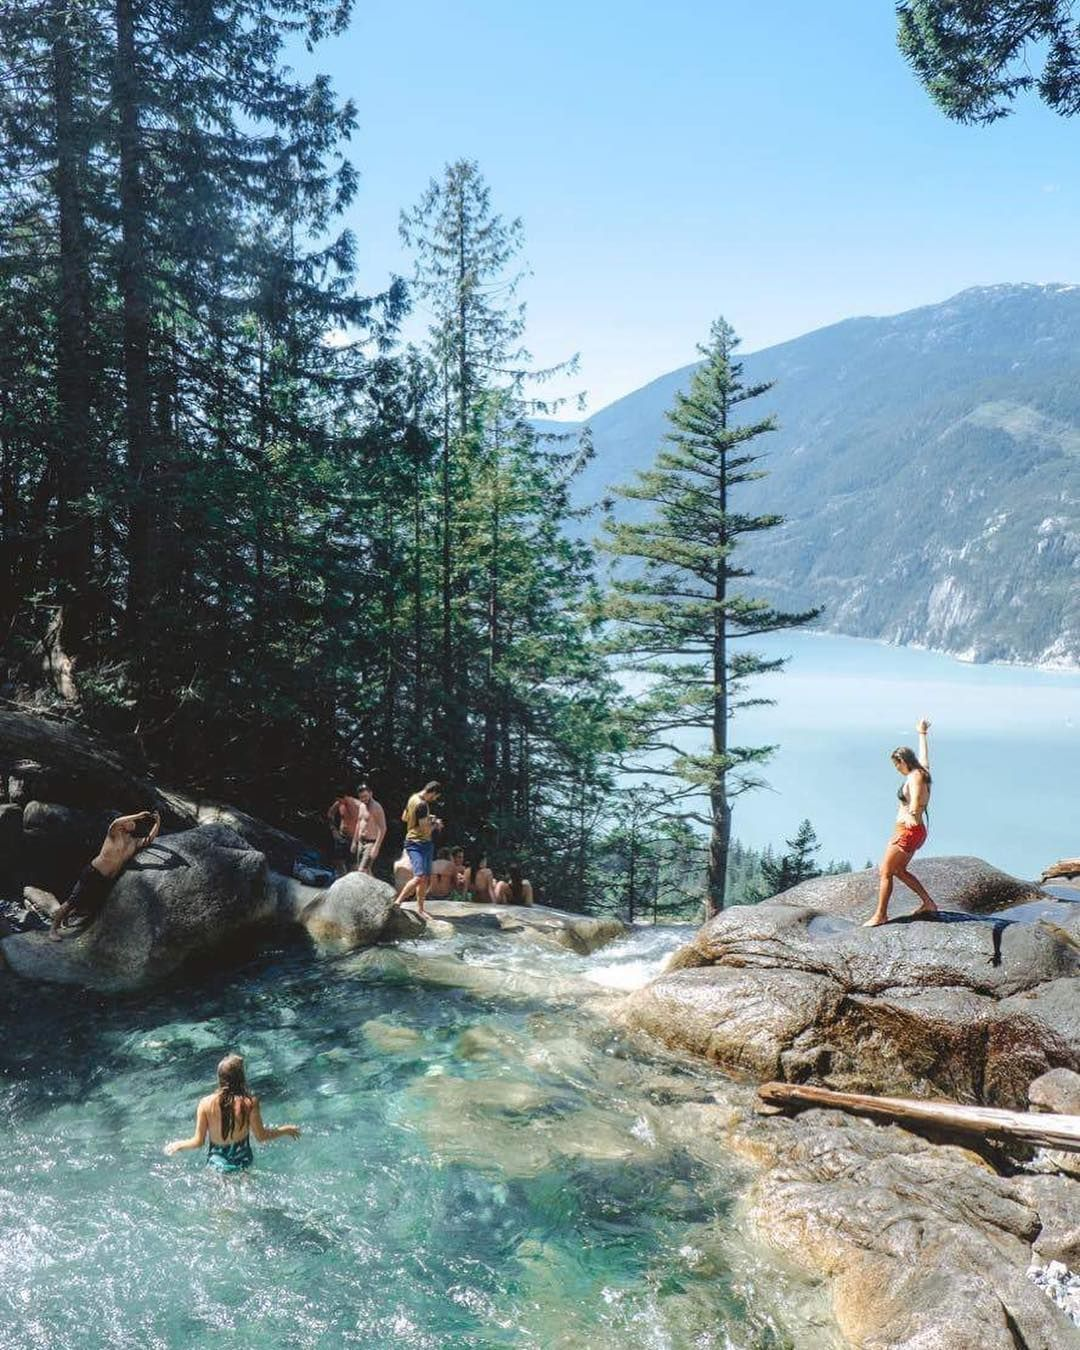 This Stunning Waterfall And Swimming Hole In BC Is The Ultimate Summer Hangout Spot - Narcity